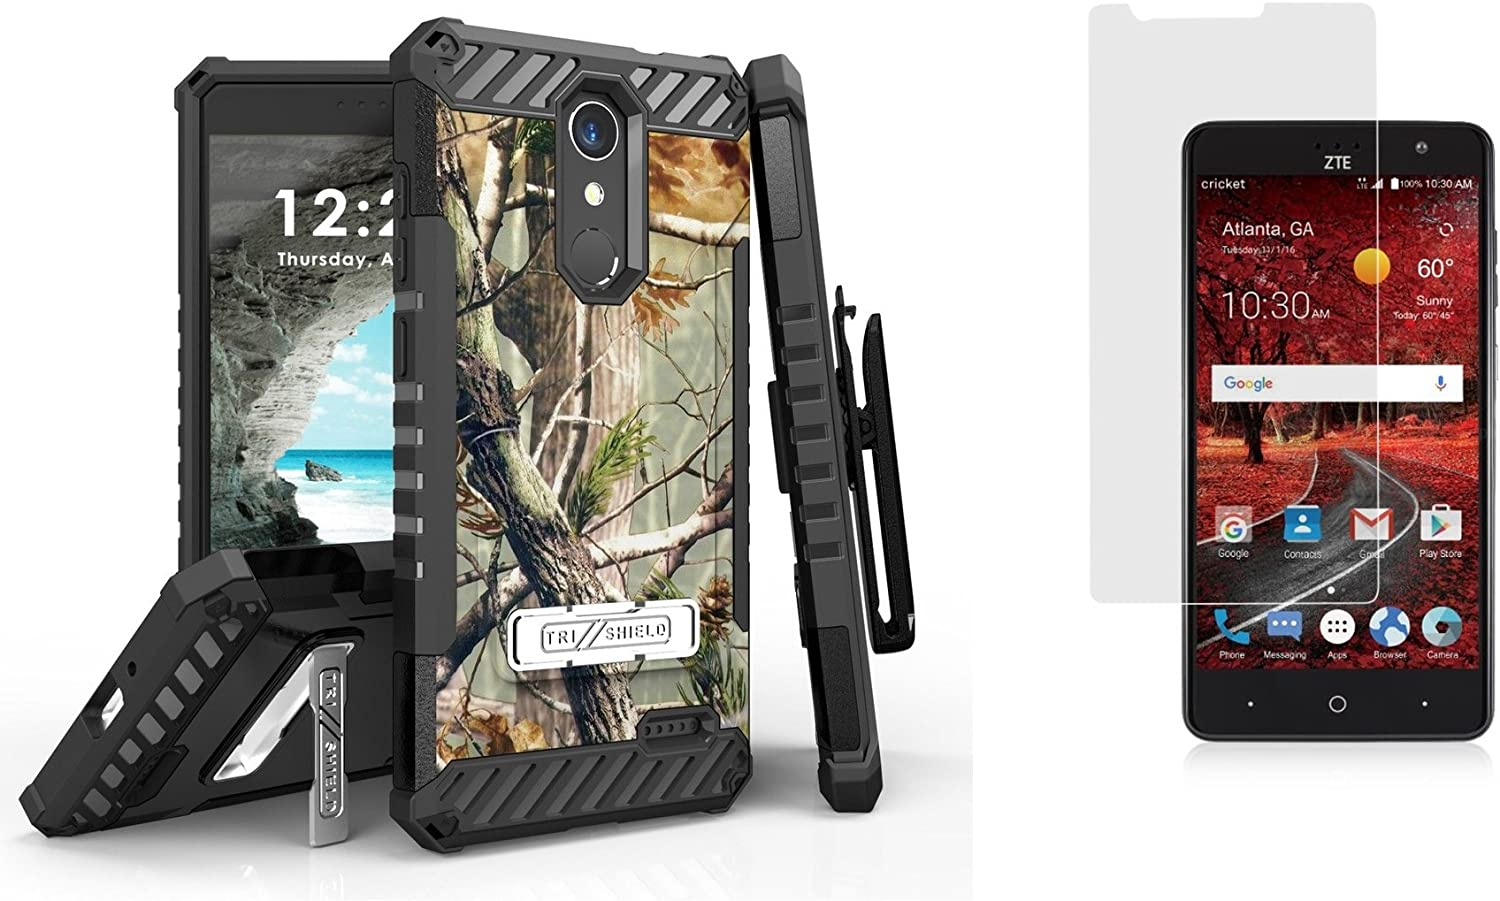 Outdoor Camo ZTE Grand X 4 Z956 with Tempered Glass Screen Protector Beyond Cell Case Bundle Compatible with ZTE Blade Spark Z971 Tri-Shield Military Grade Belt Holster Case ZTE ZMAX One Z719DL